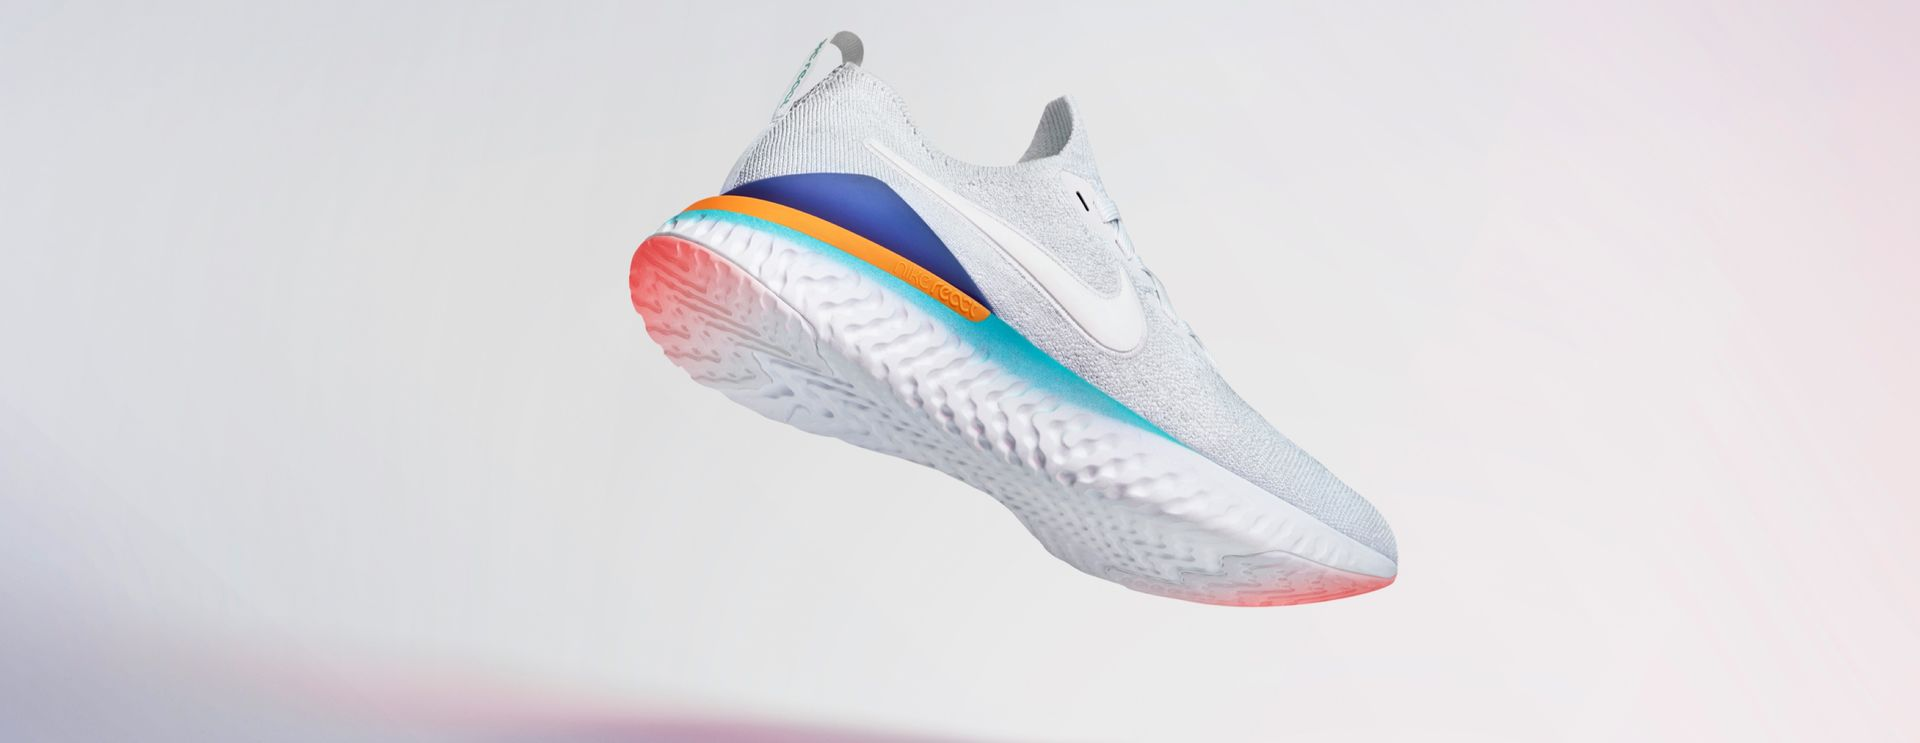 new concept 28b0c 0a28e NEW COLORS  EPIC REACT 2